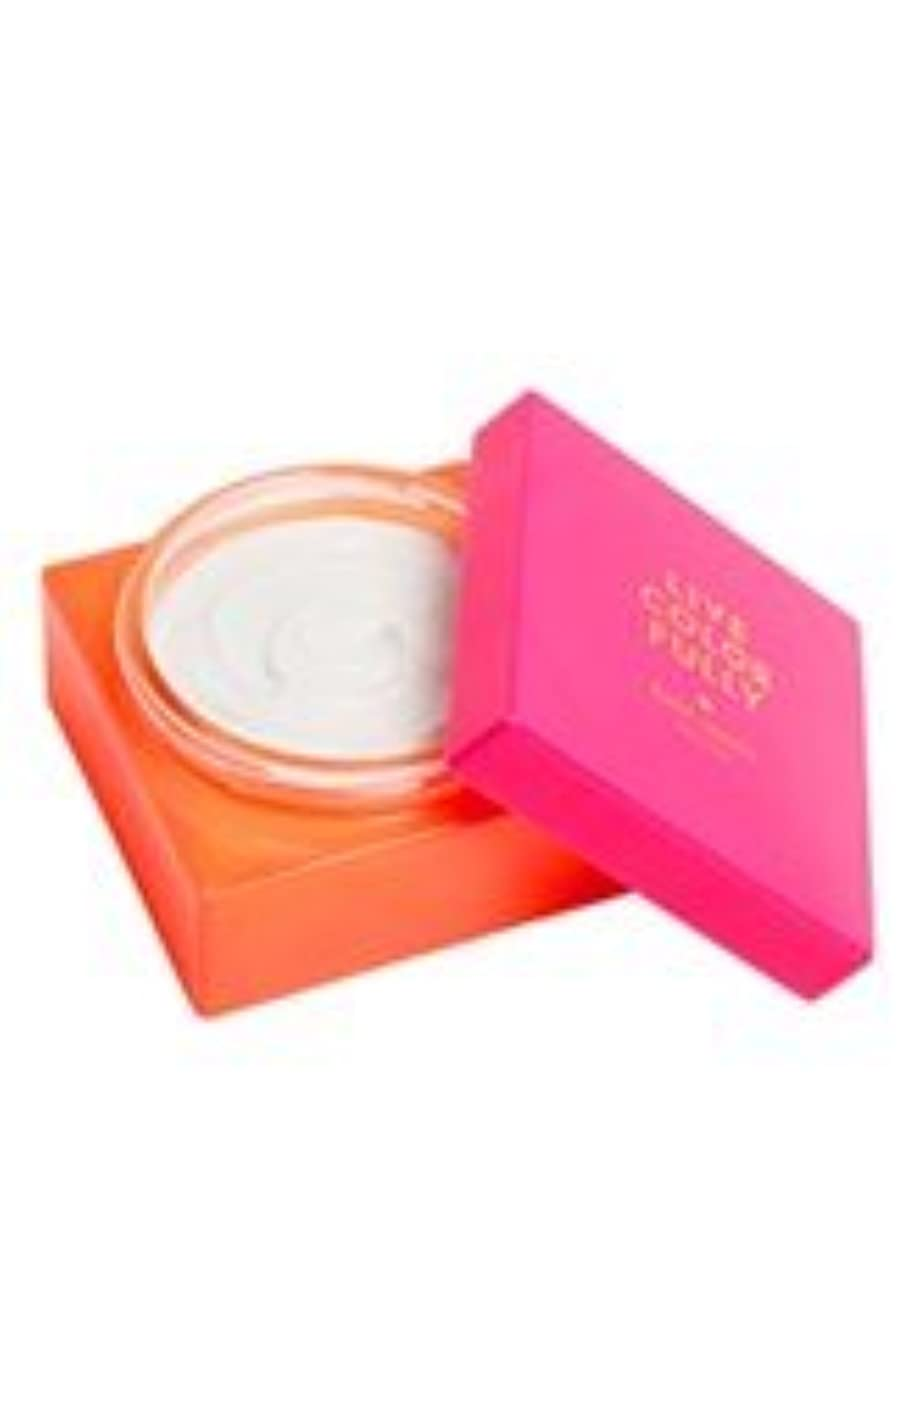 Live Colorfully (リブ カラフリー) 6.8 oz (200ml) Body Cream(ボディークリーム)by Kate Spade for Women